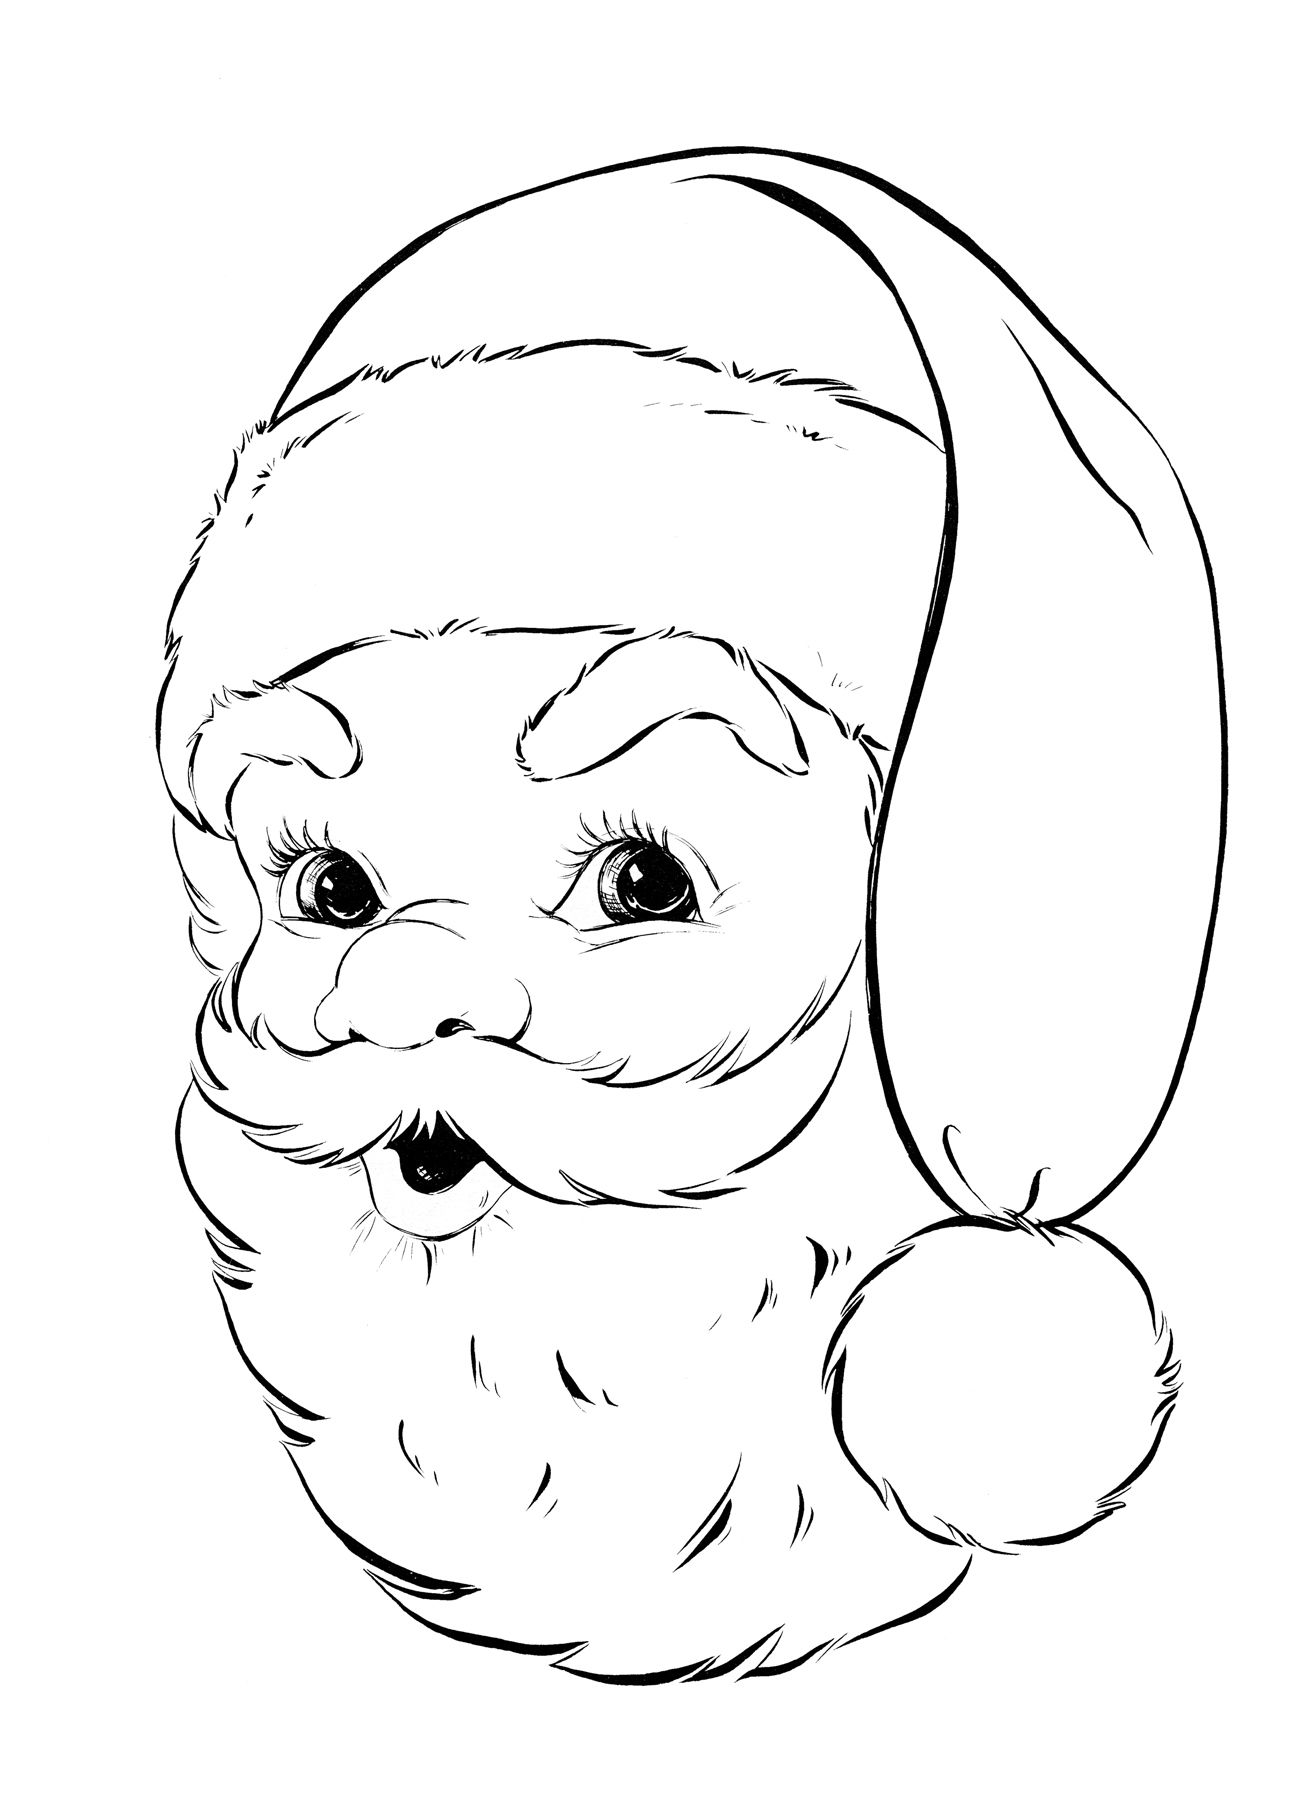 Free Vintage Christmas Coloring Pages With 50 Activities For Children Digi Stamps Pinterest Santa